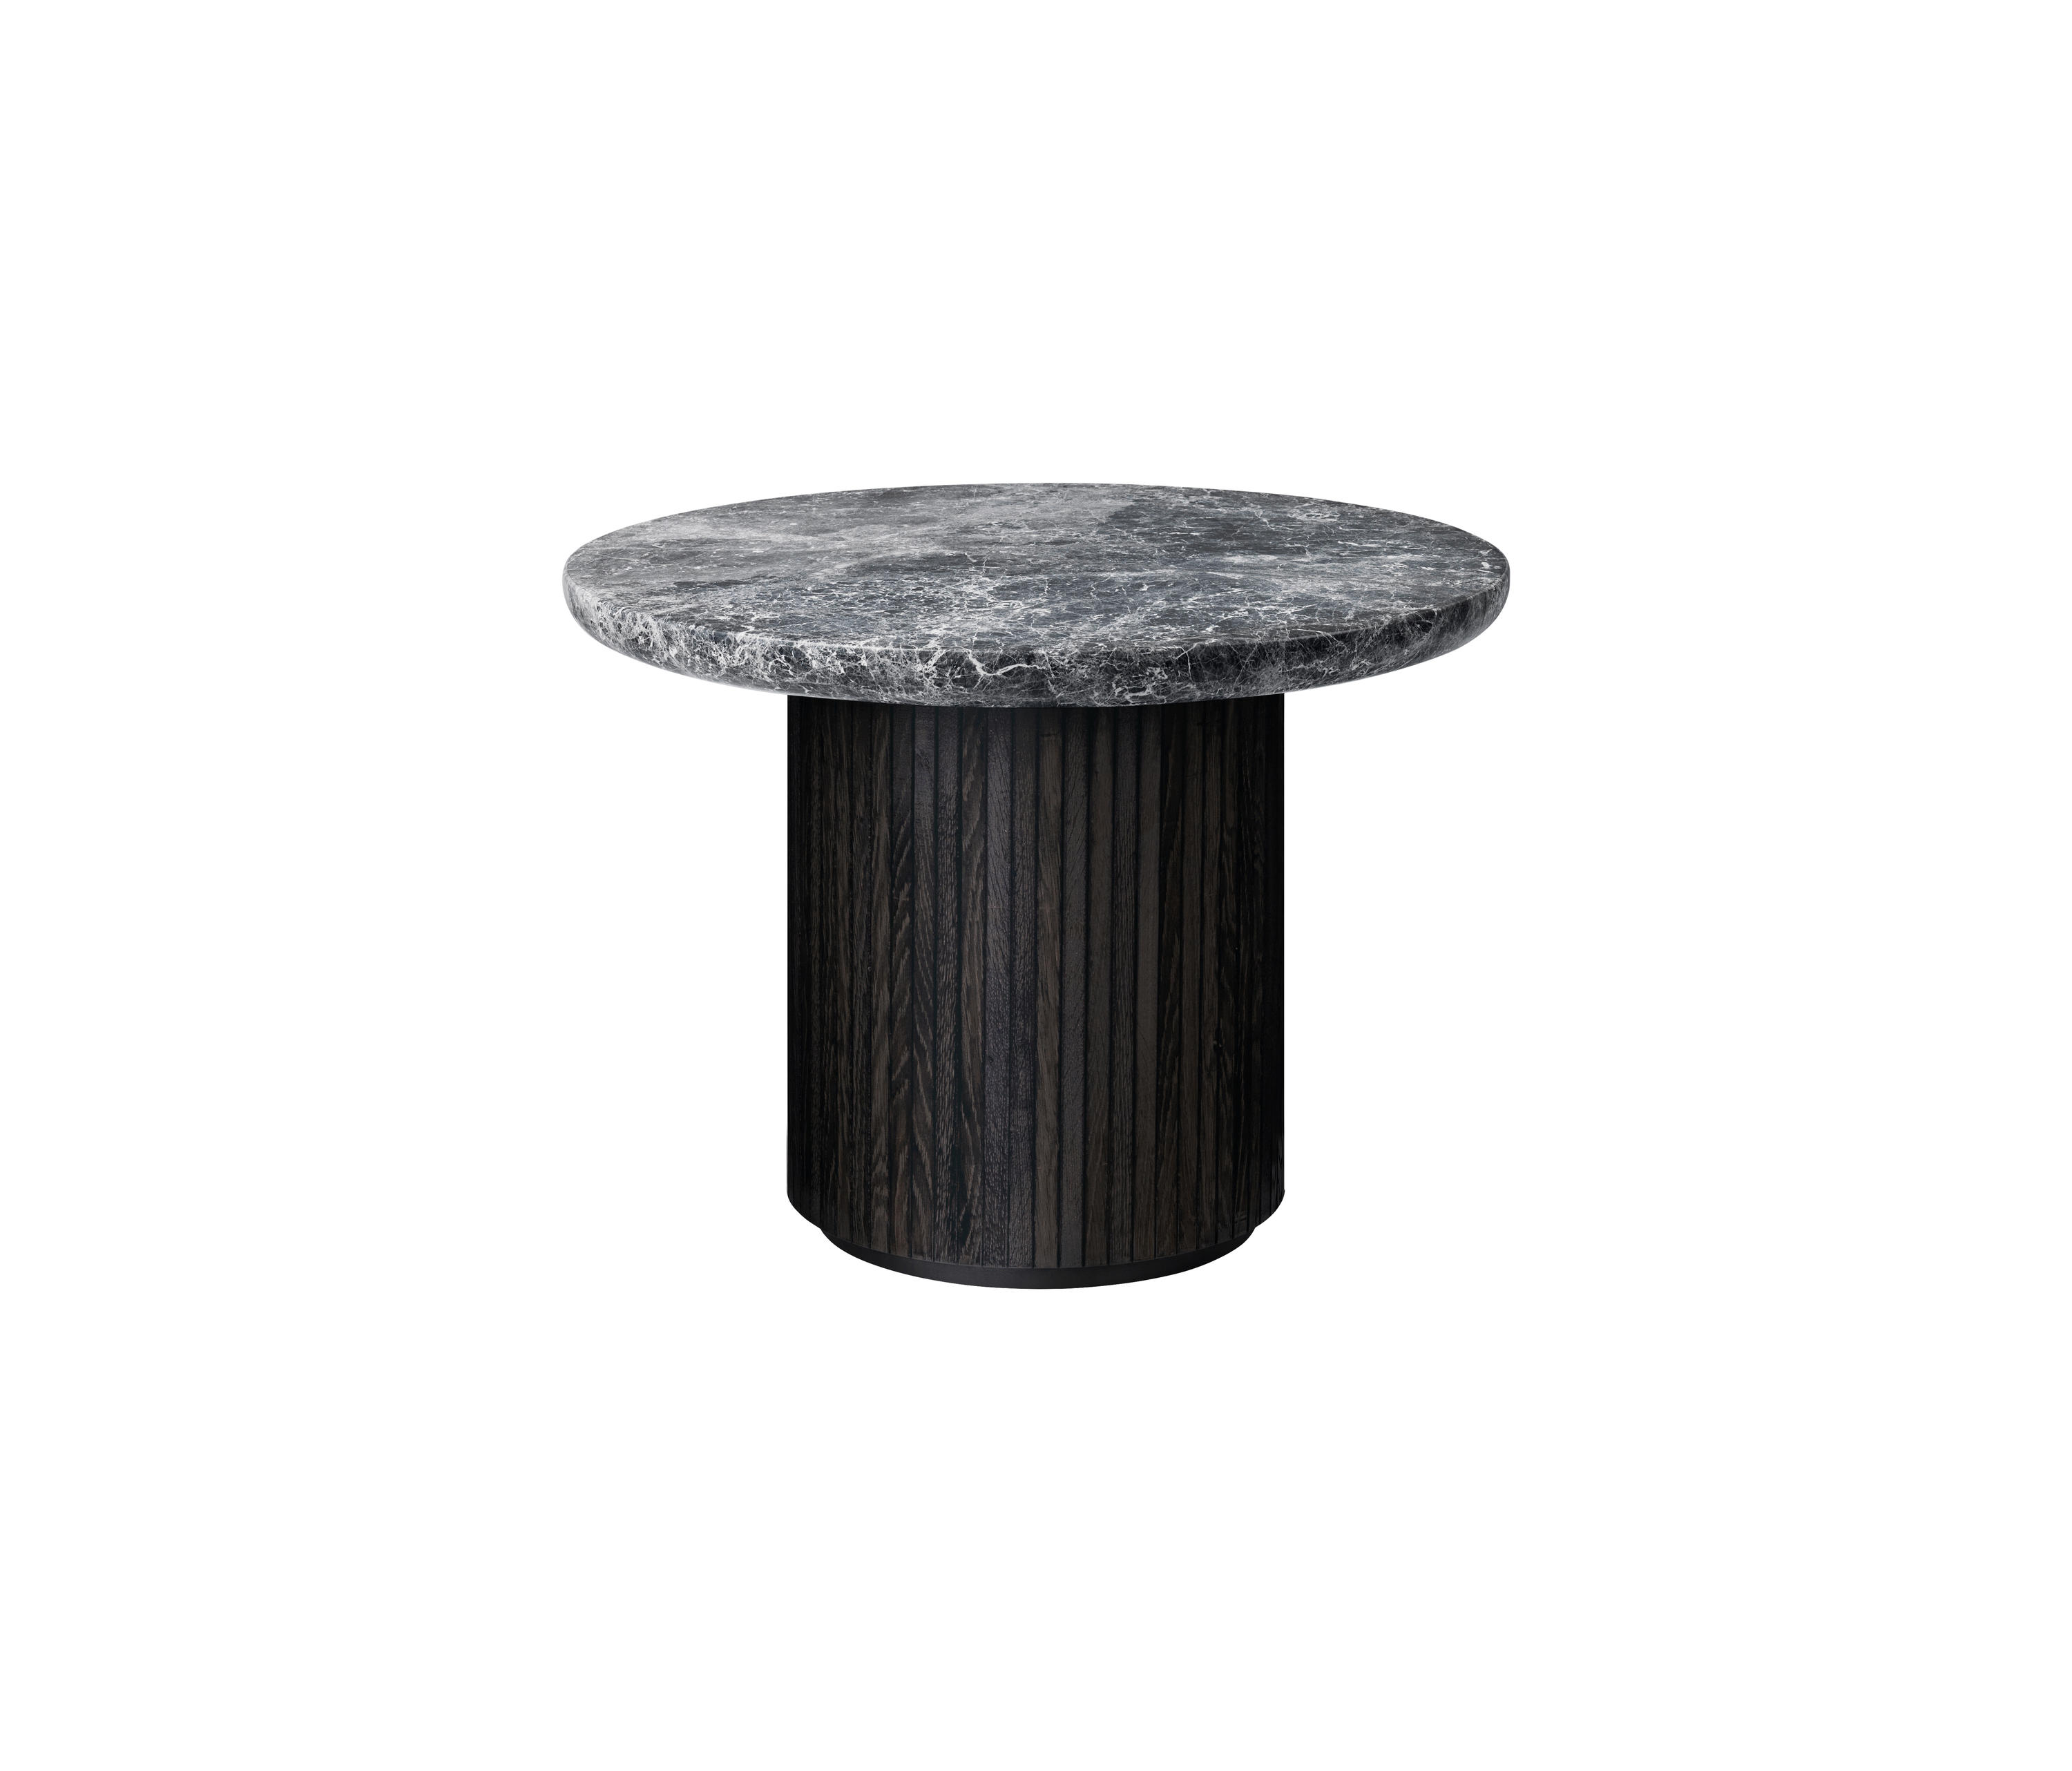 95abbeb316 MOON COFFEE TABLE - ROUND - Coffee tables from GUBI | Architonic